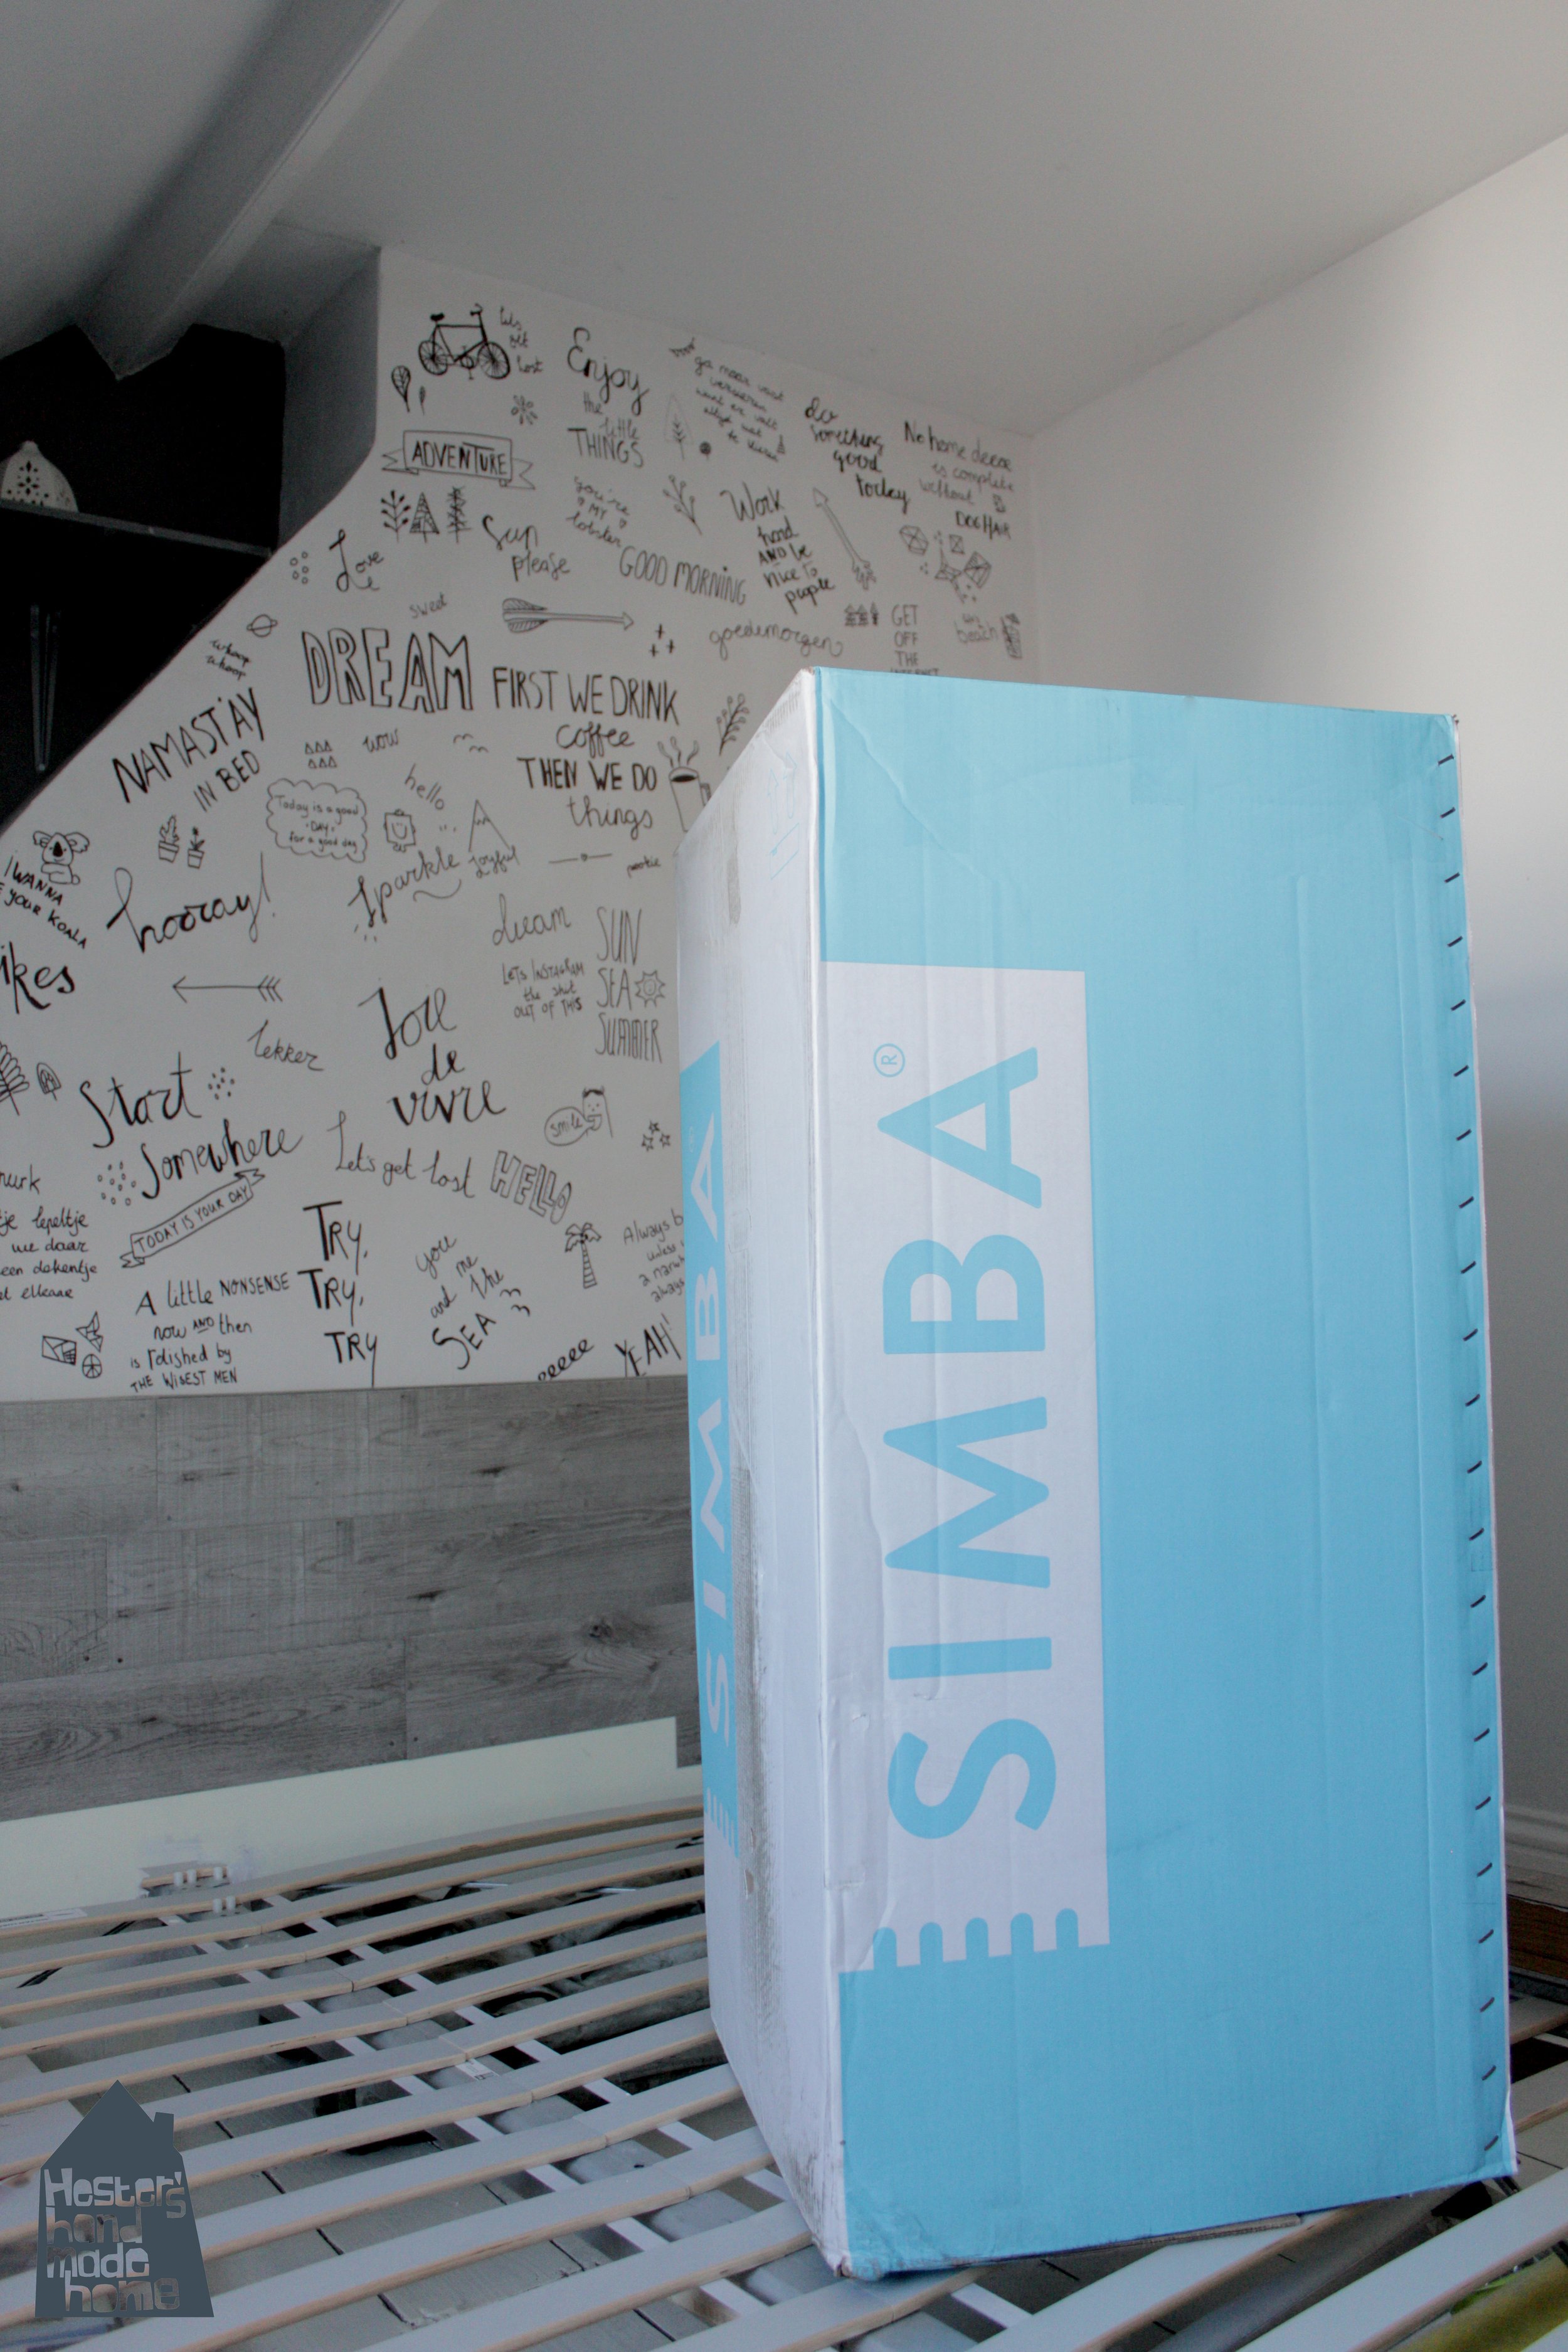 Simba mattress review by www.hestershandmadehome.com